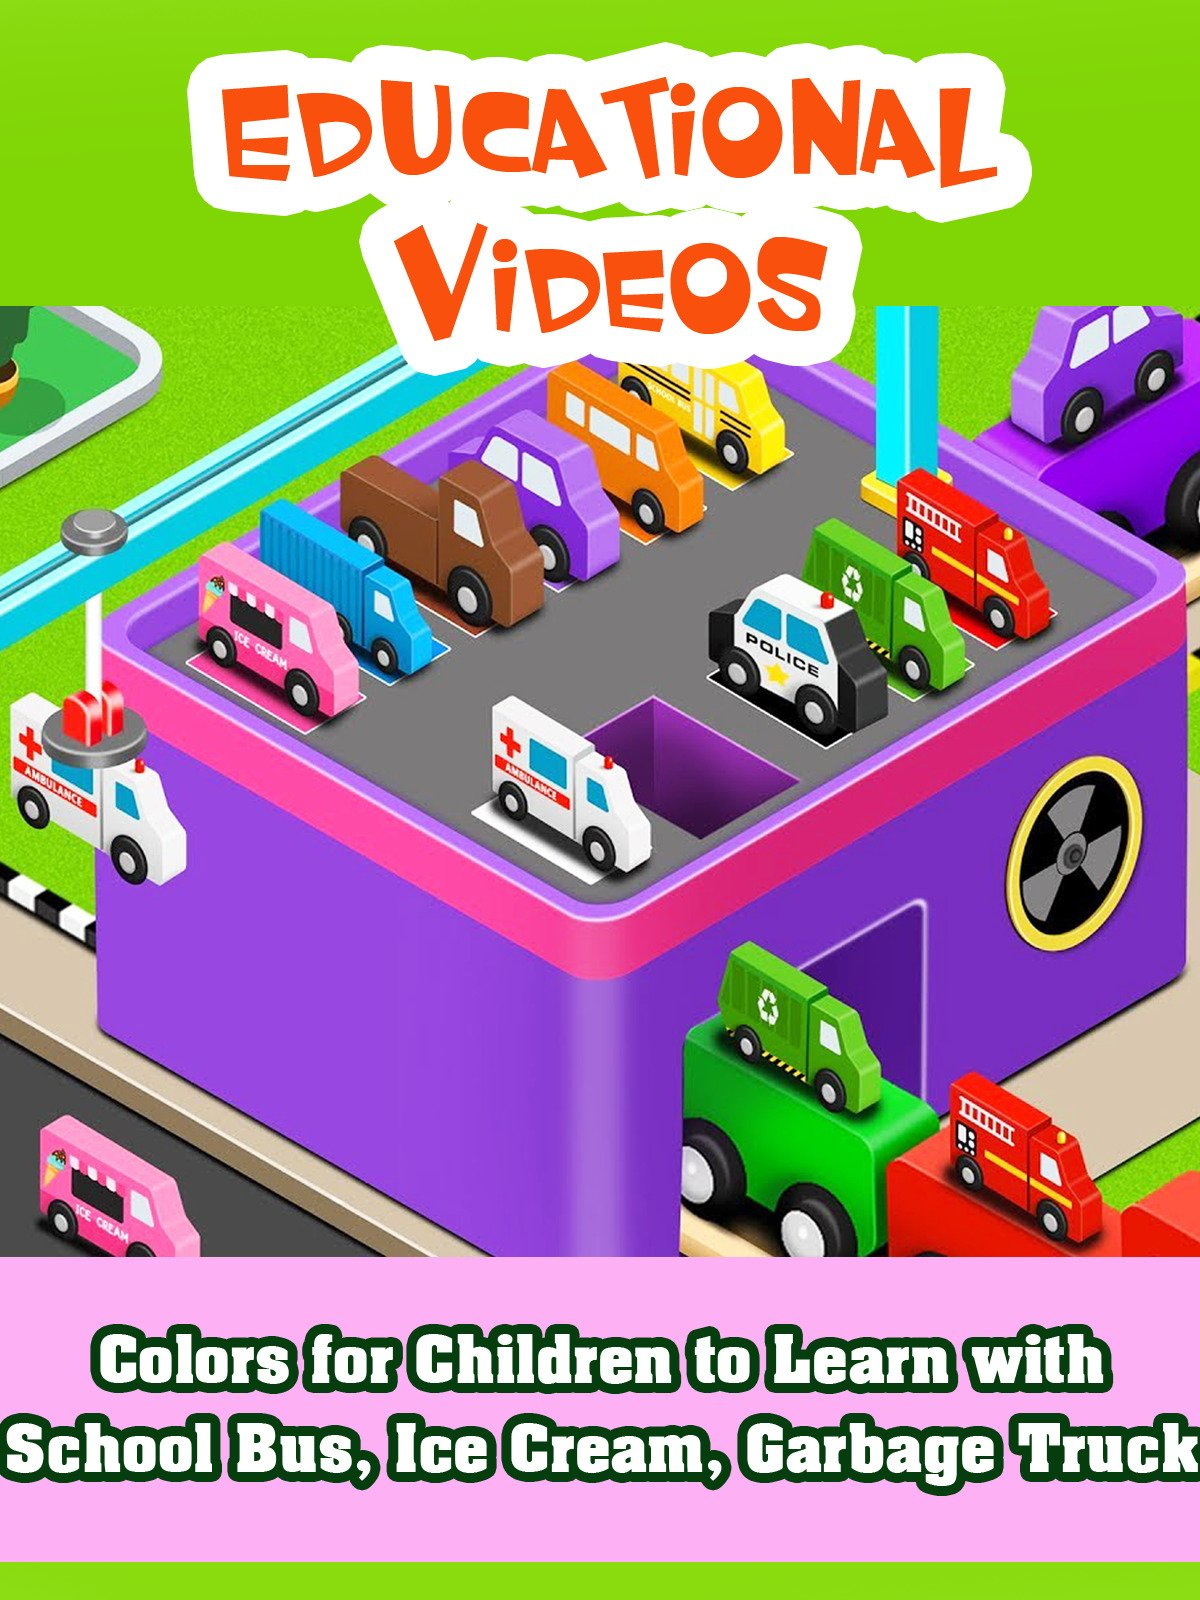 Colors for Children to Learn with School Bus, Ice Cream, Garbage Truck